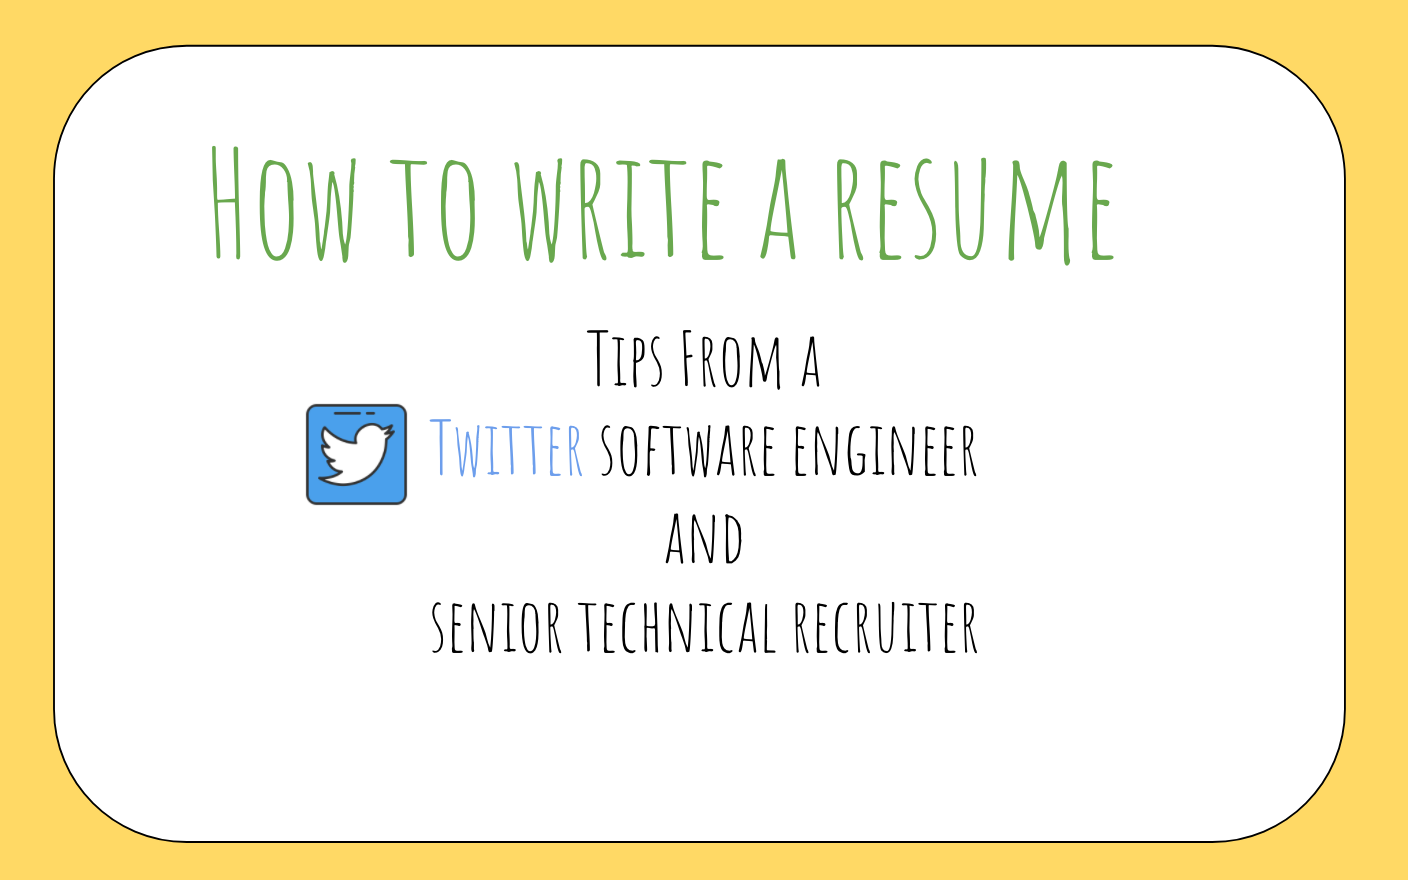 for those of you who are starting out on your job search and have questions about how to prepare a great rsum that can get your foot in the door - How To Write A Great Resume